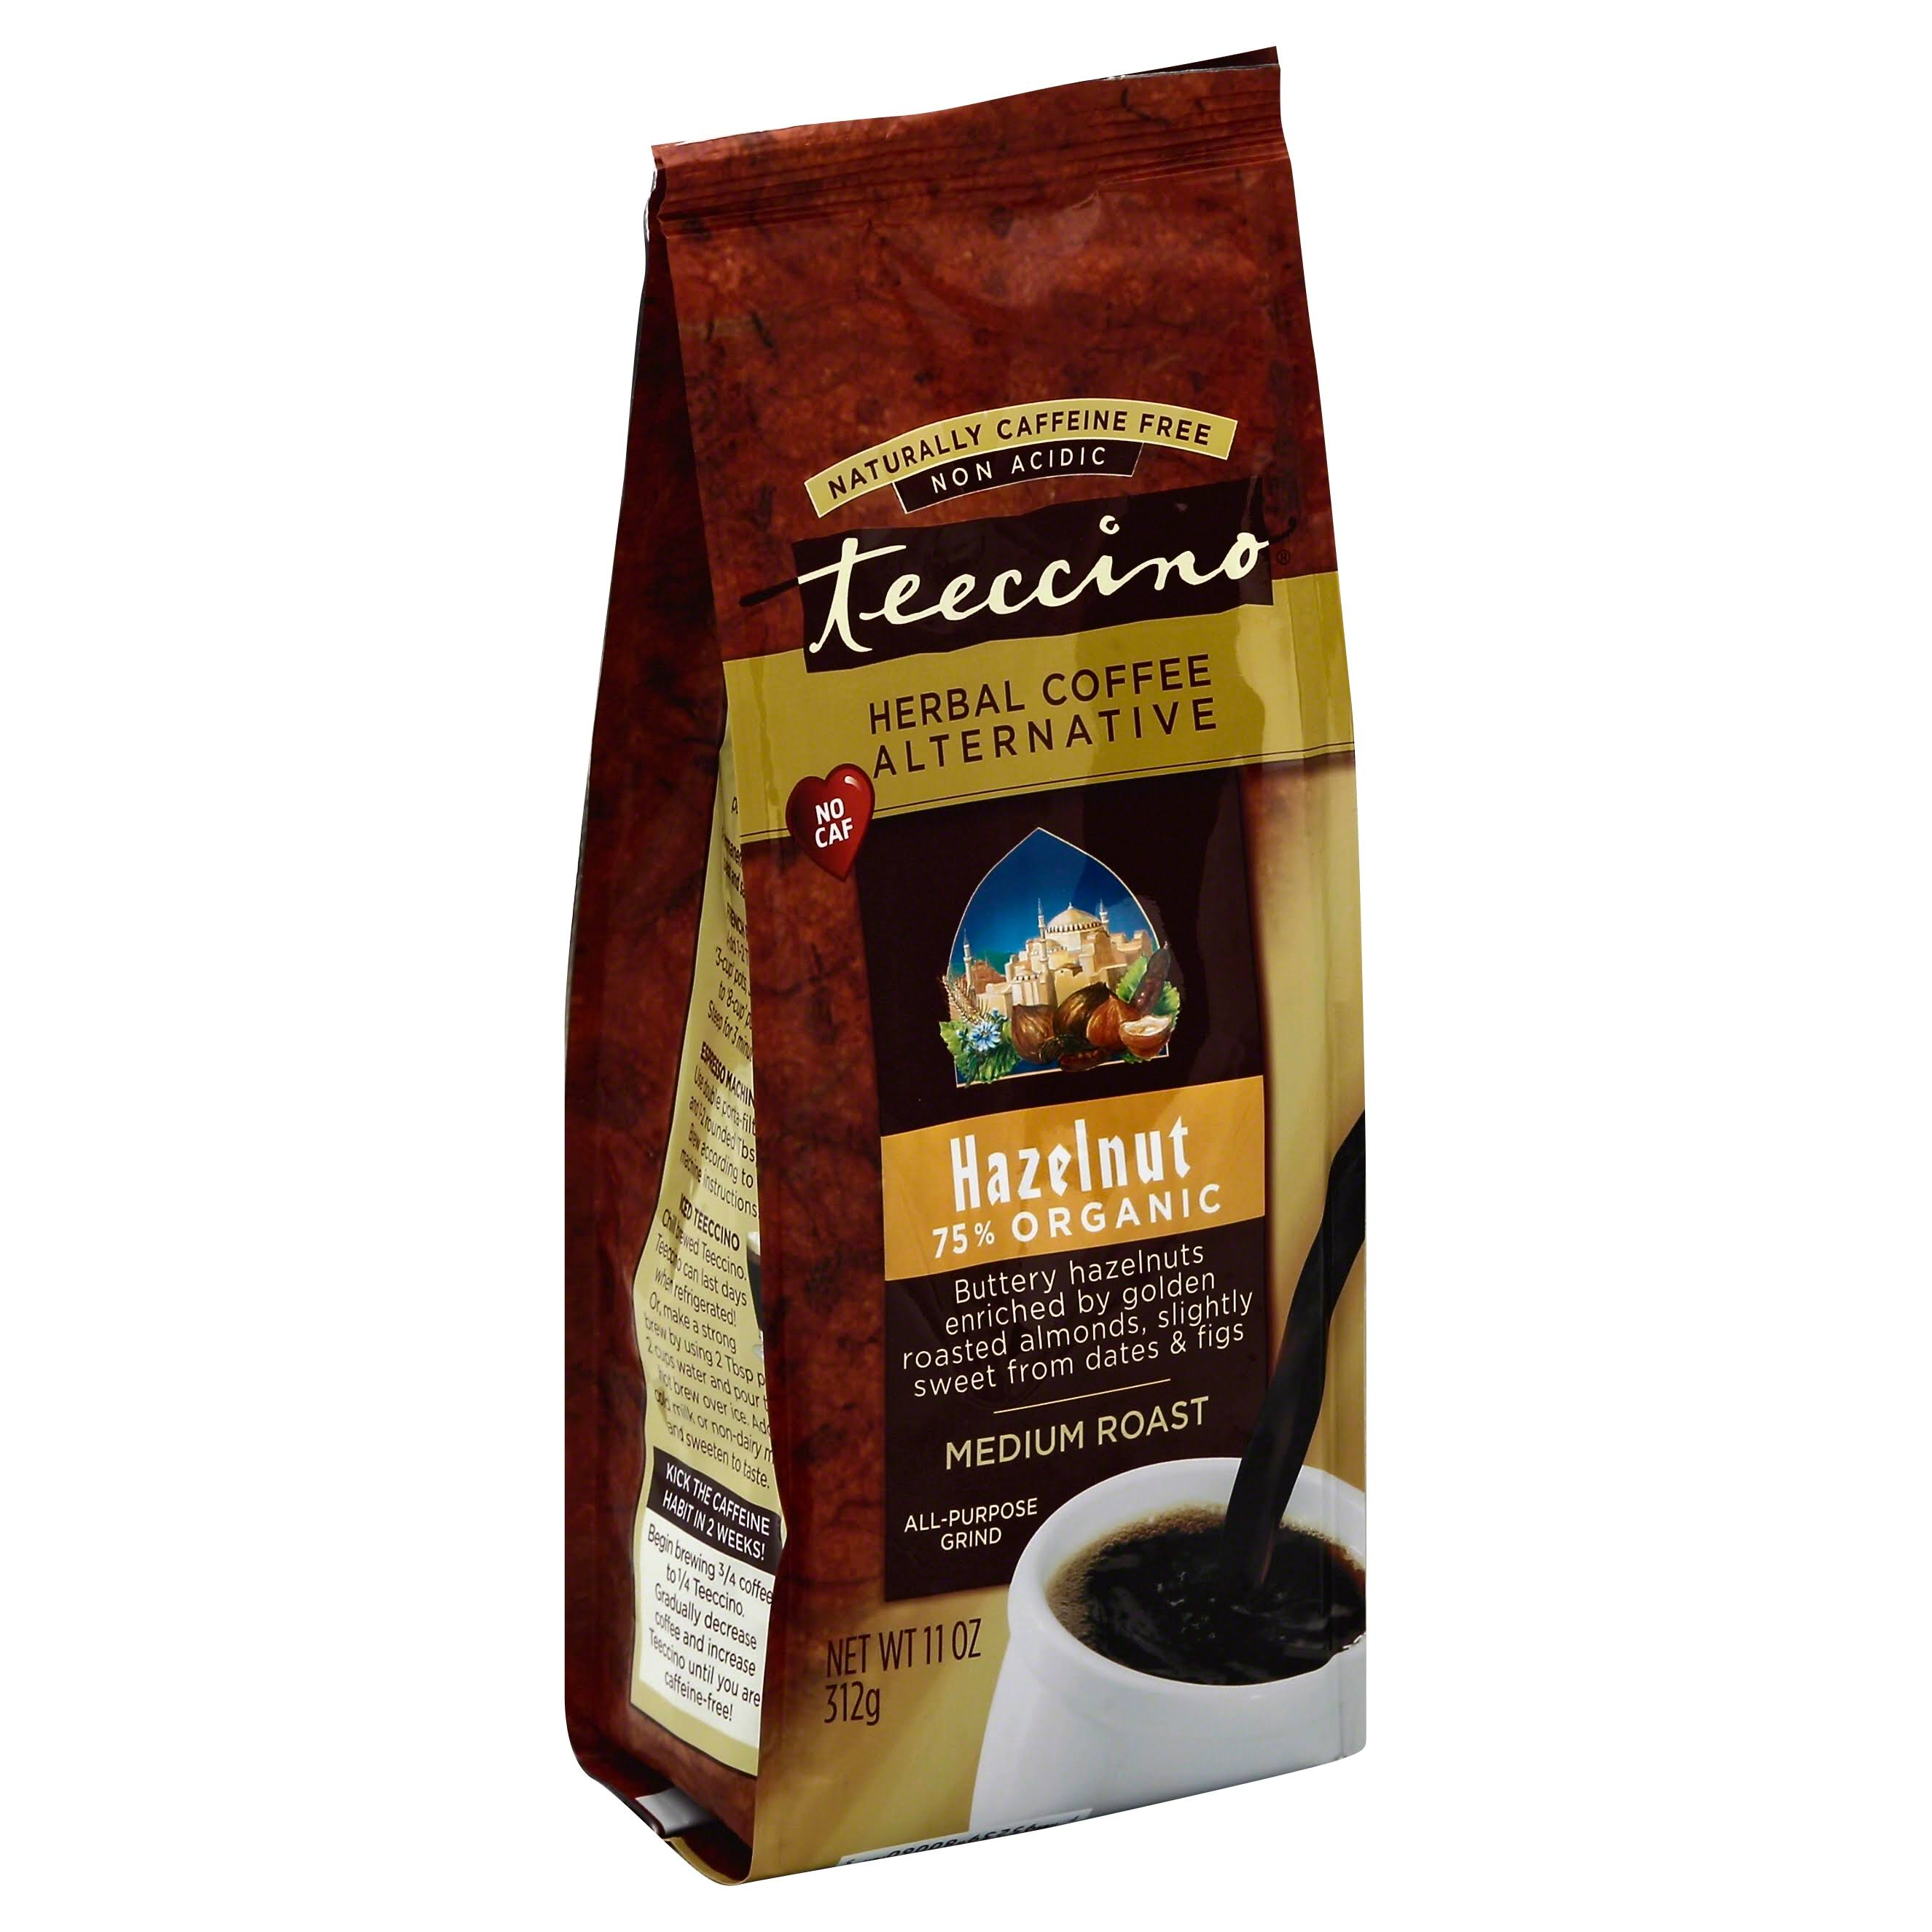 Teeccino Mediterranean Caffeine-Free Herbal Coffee - Hazelnut, 11oz